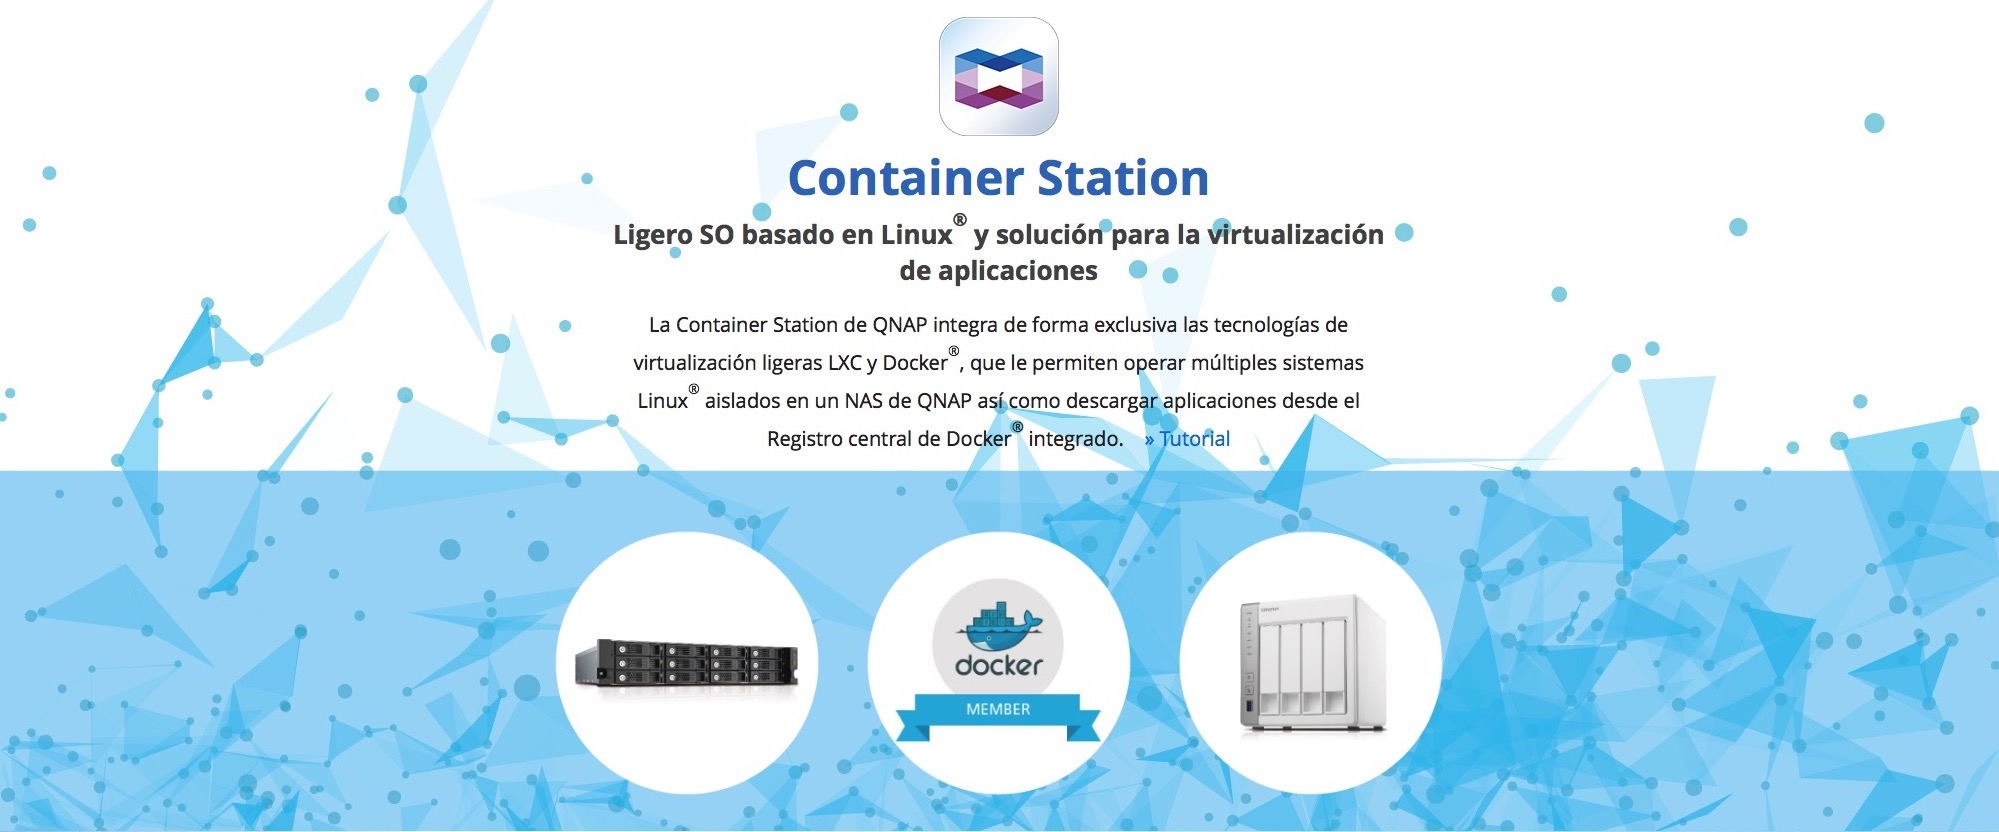 Container Station